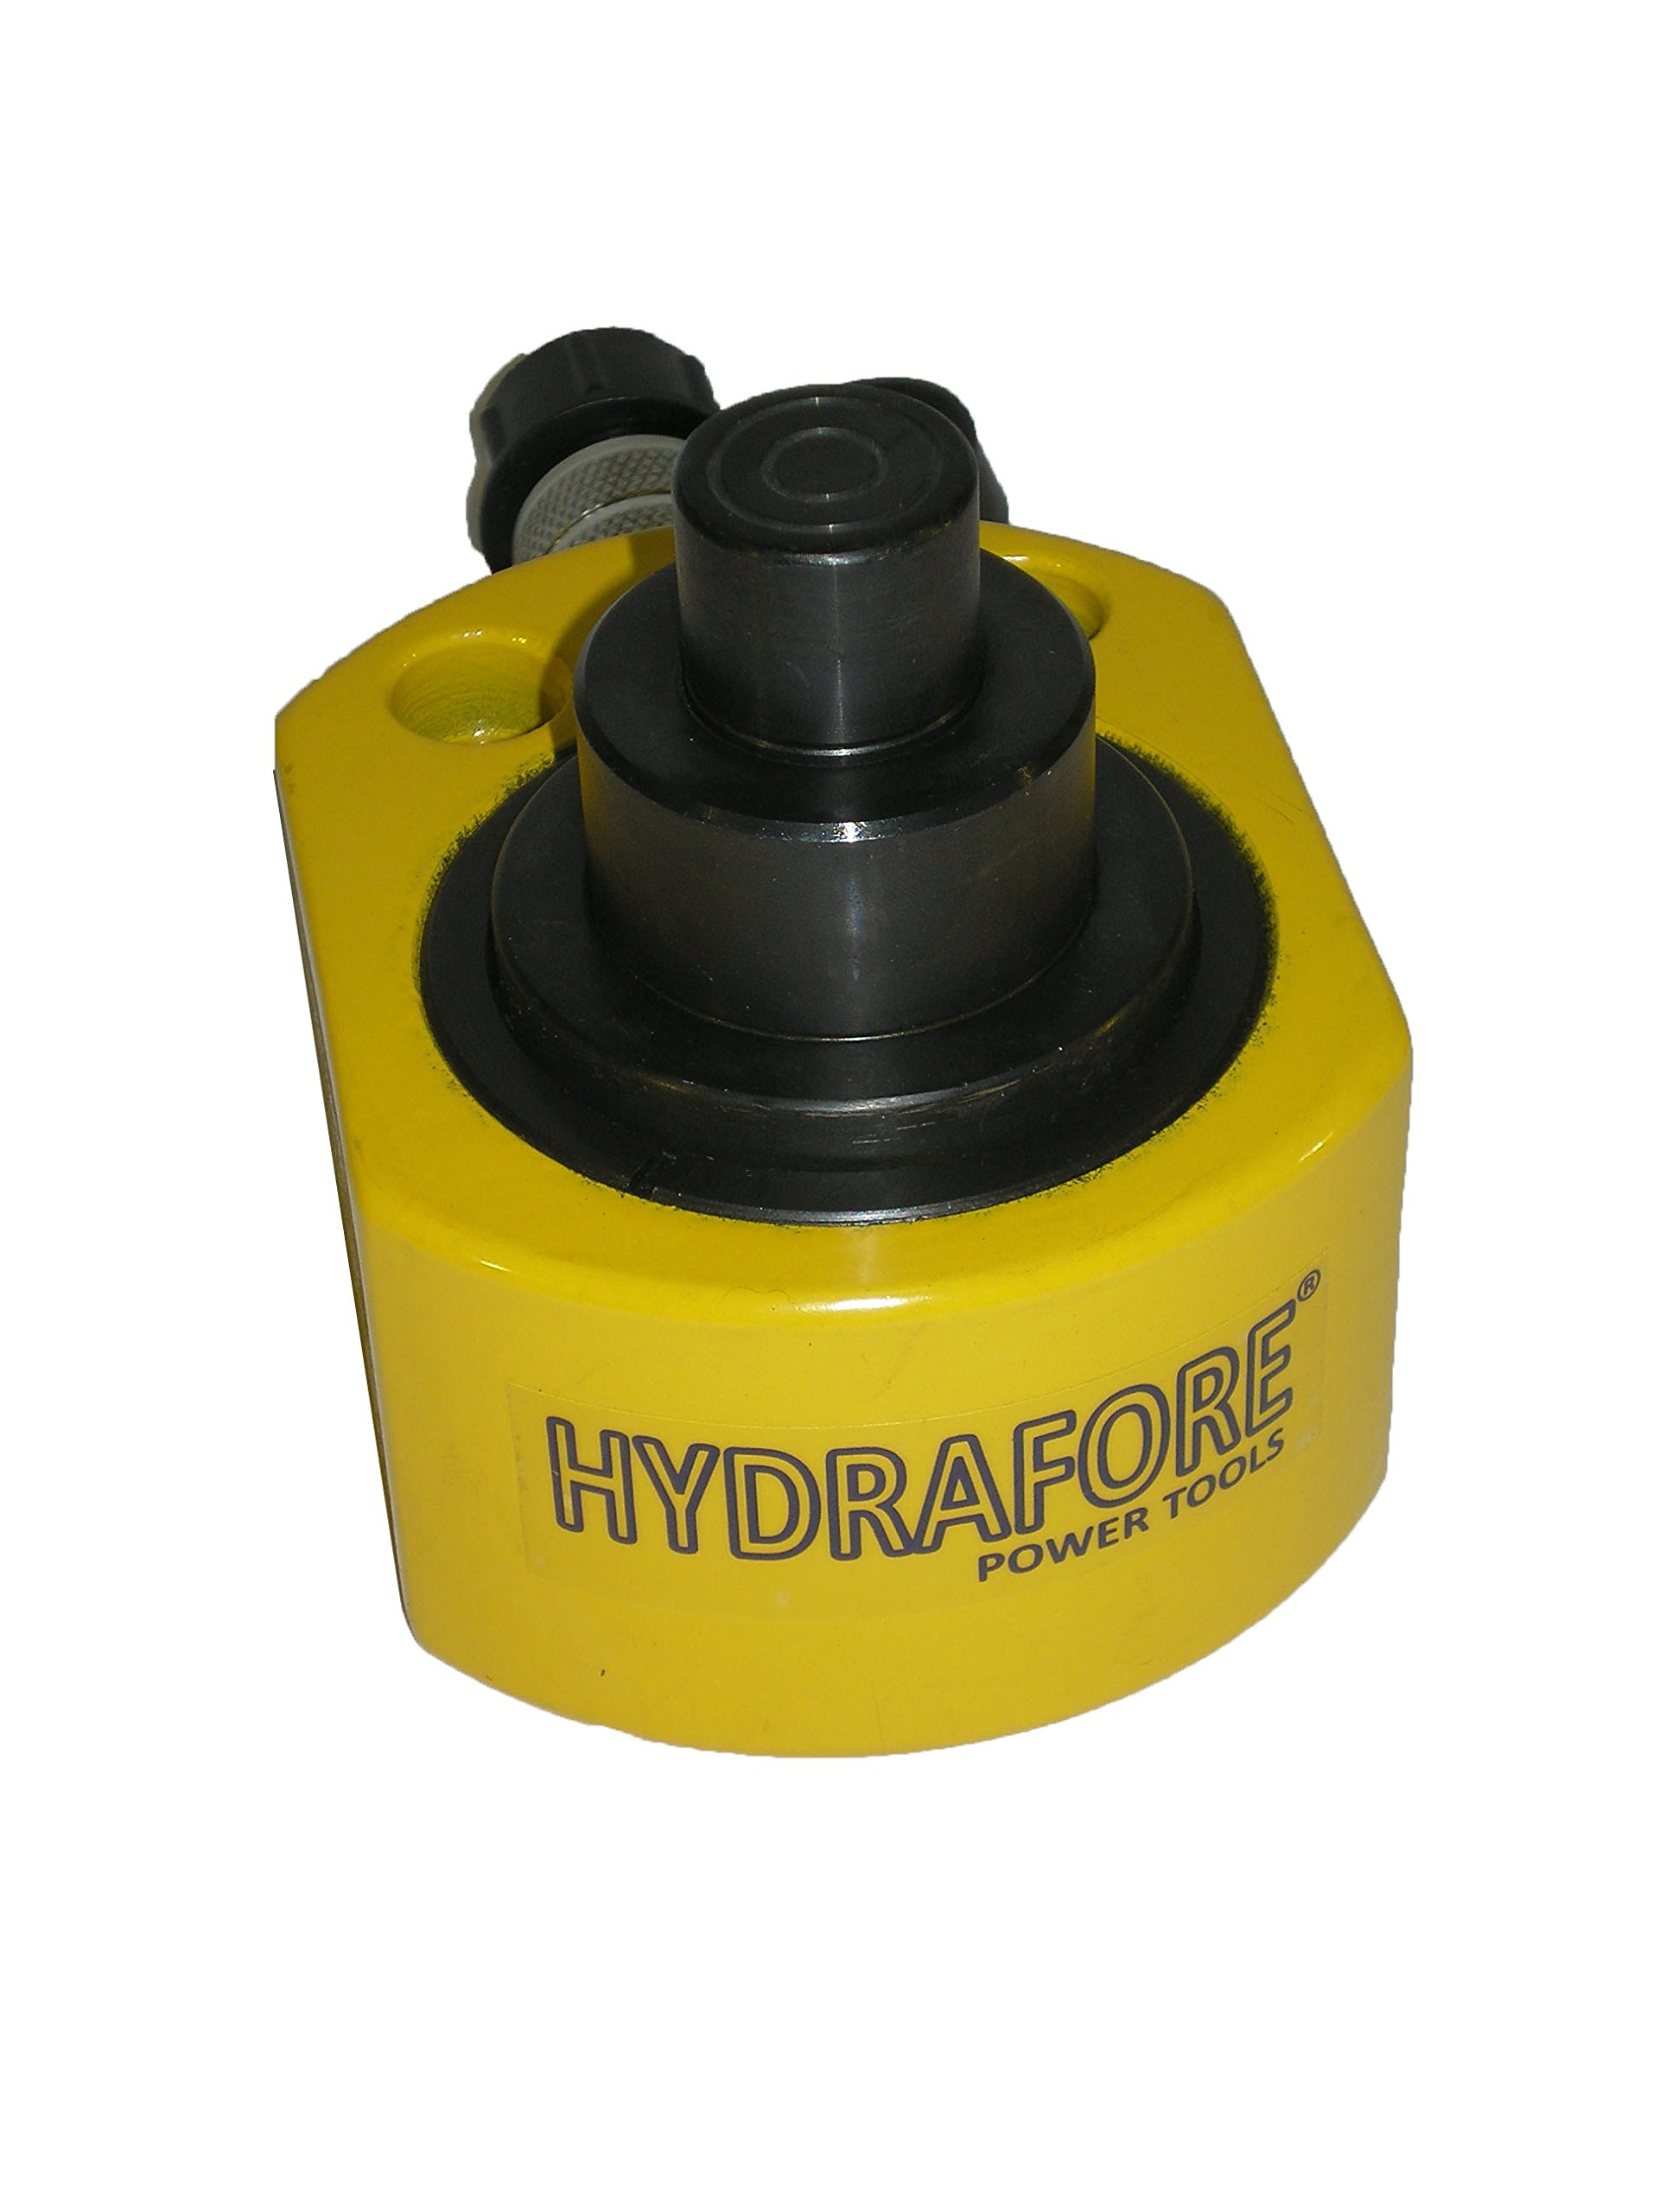 30 tons 2.12'' stroke Multi stage Low Height Hydraulic Cylinder Jack Ram YG-30D by HYDRAFORE (Image #4)